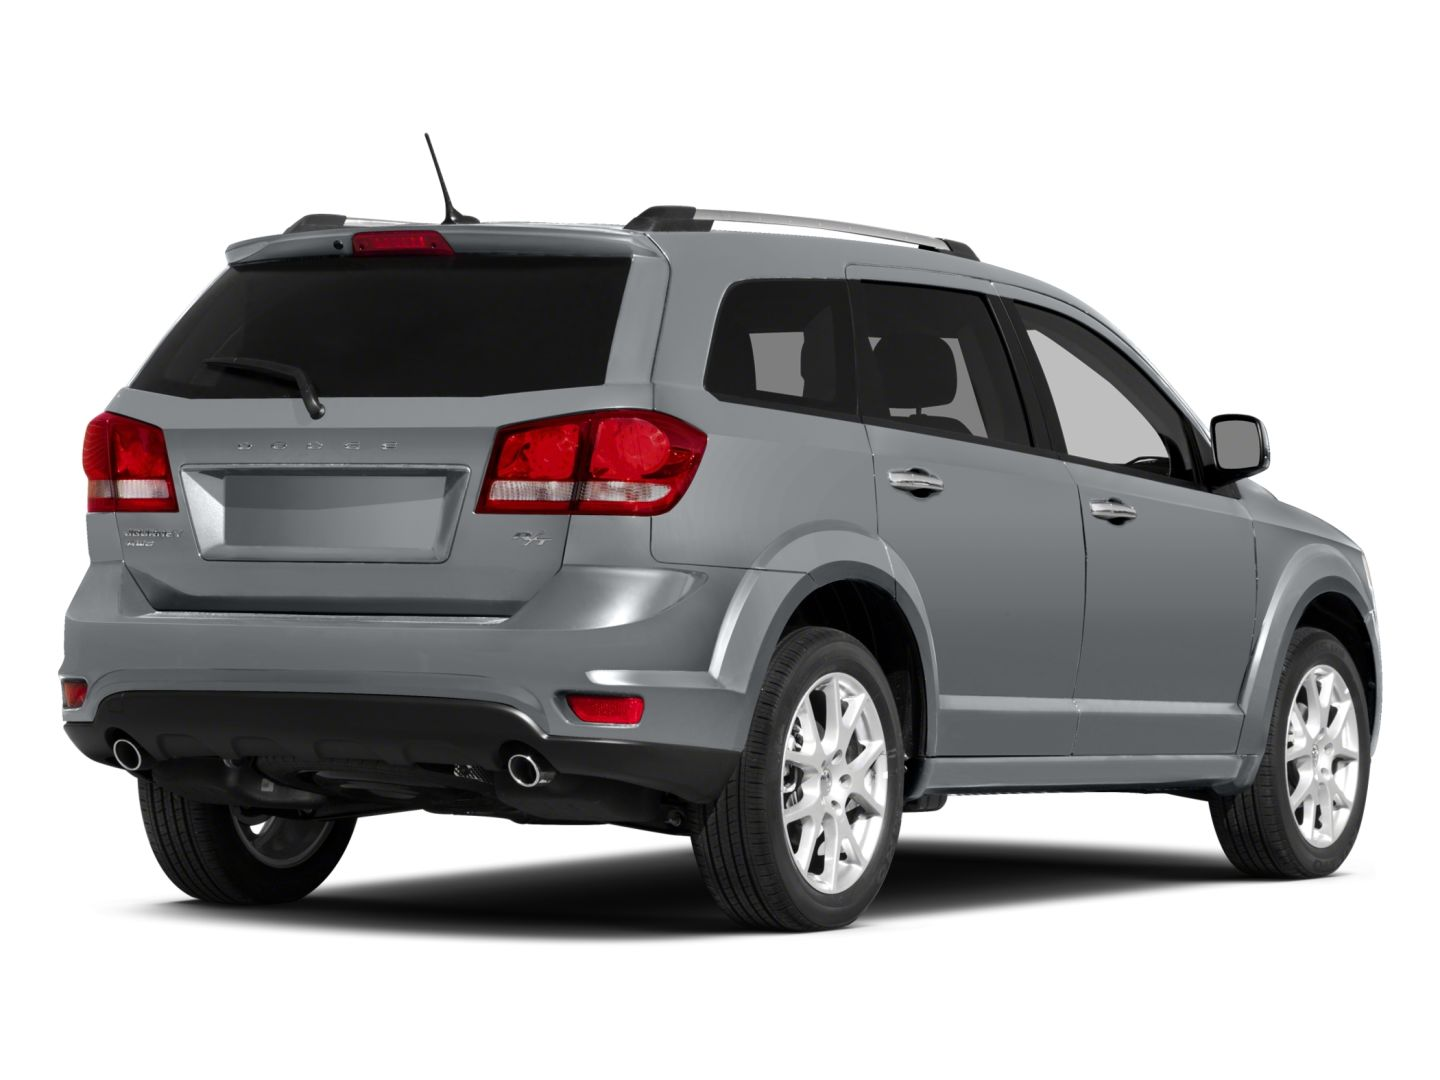 2015 Dodge Journey R/T for sale in Yellowknife, Northwest Territories